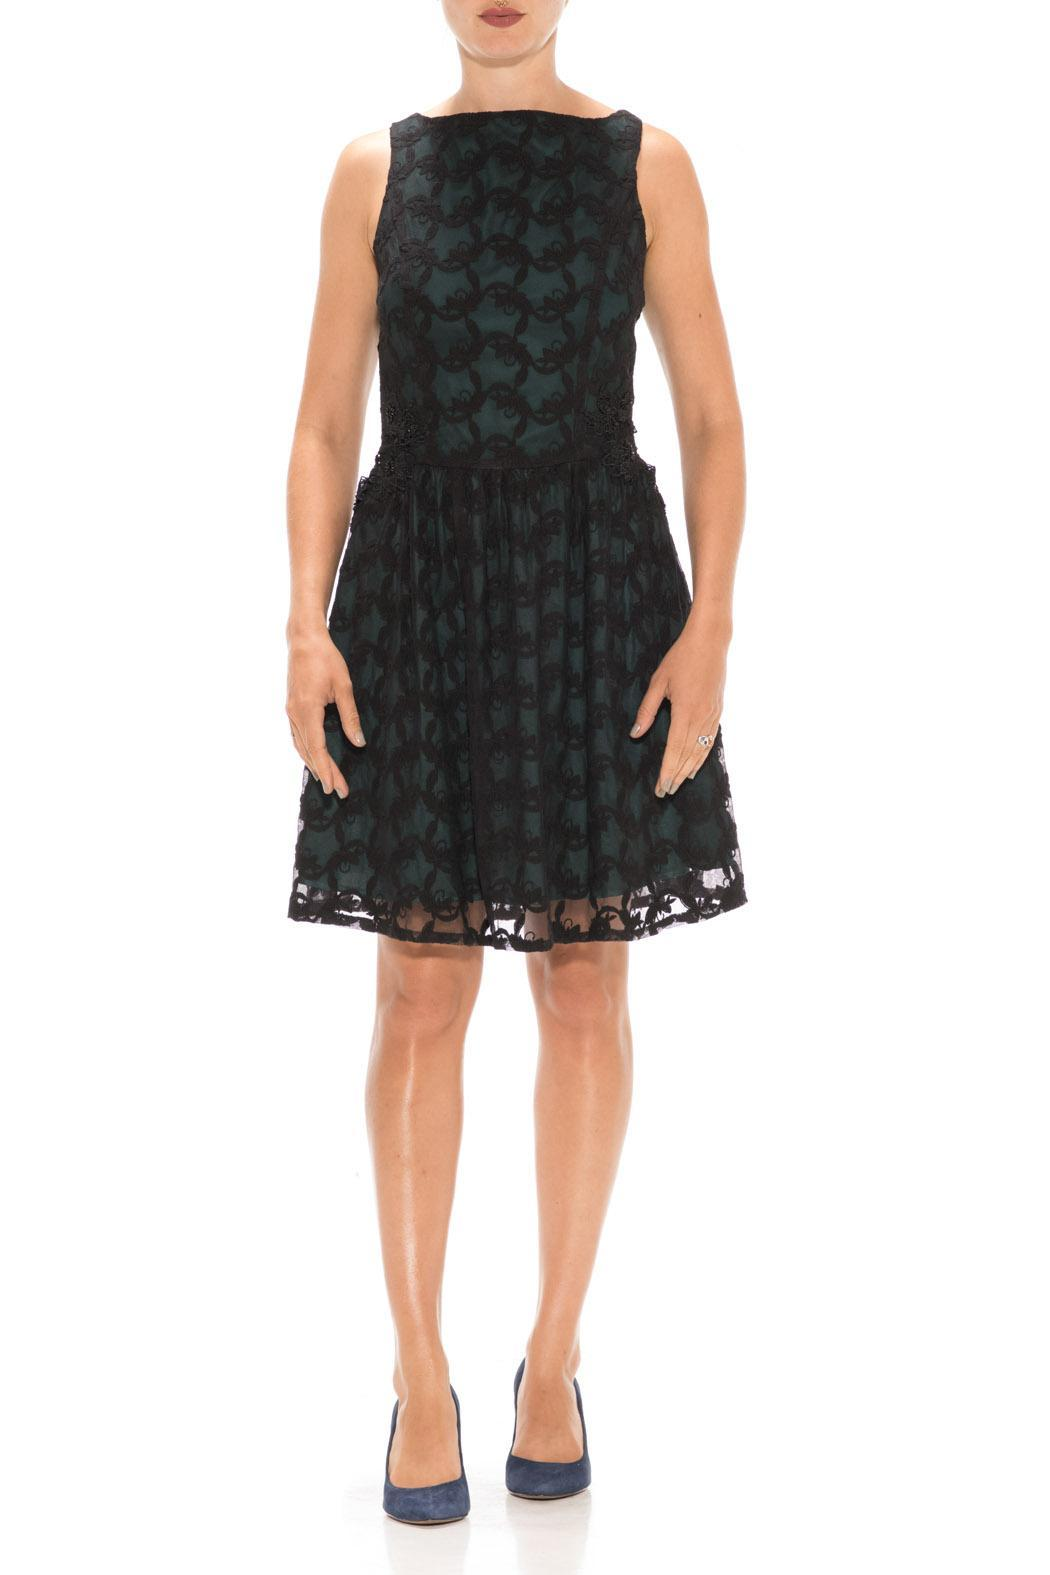 Nick & Mo Lacy Party Dress - Main Image